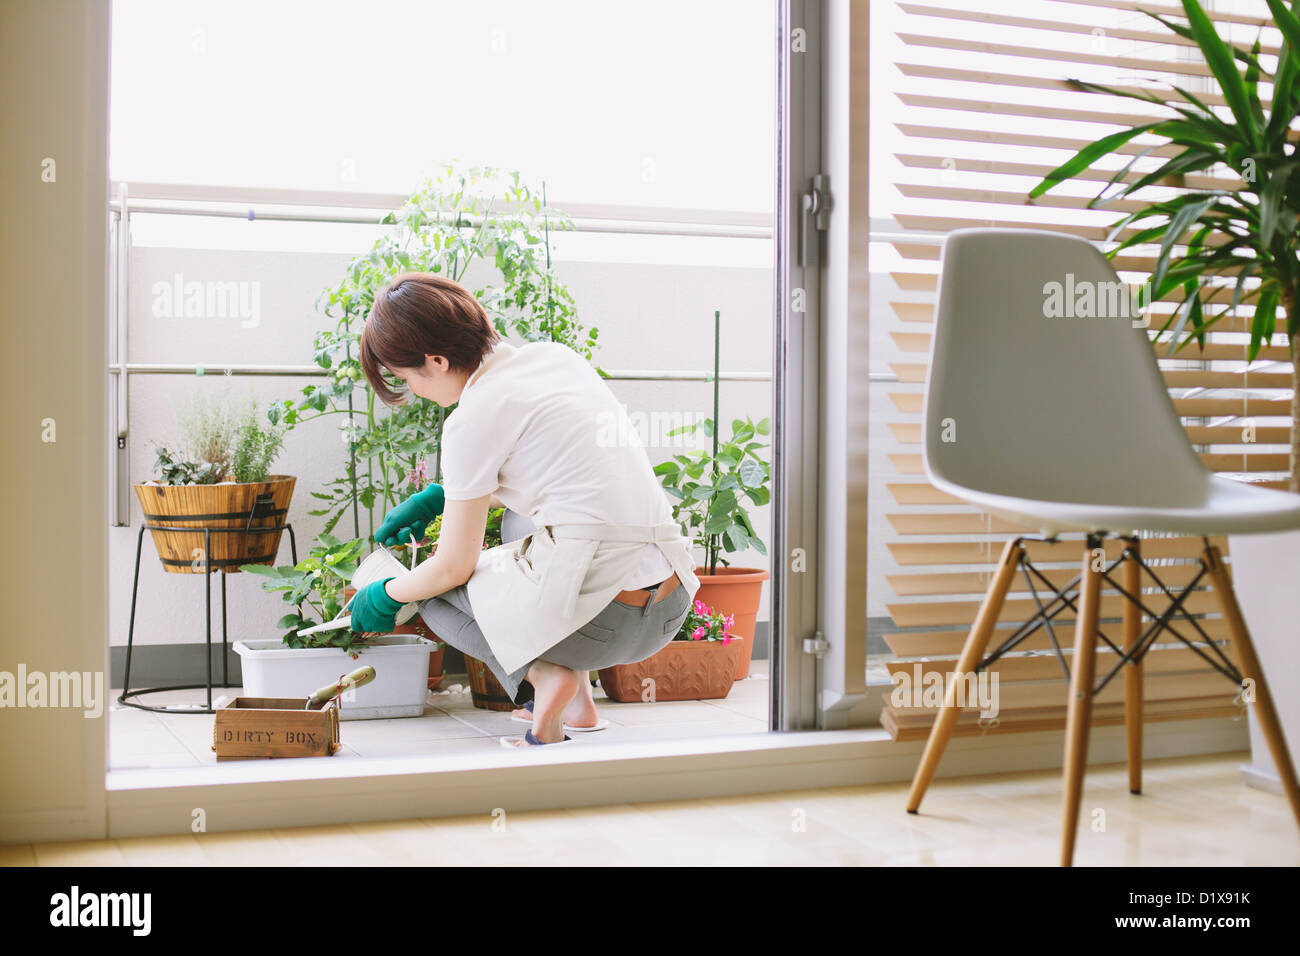 Mid adult woman gardening on the balcony - Stock Image